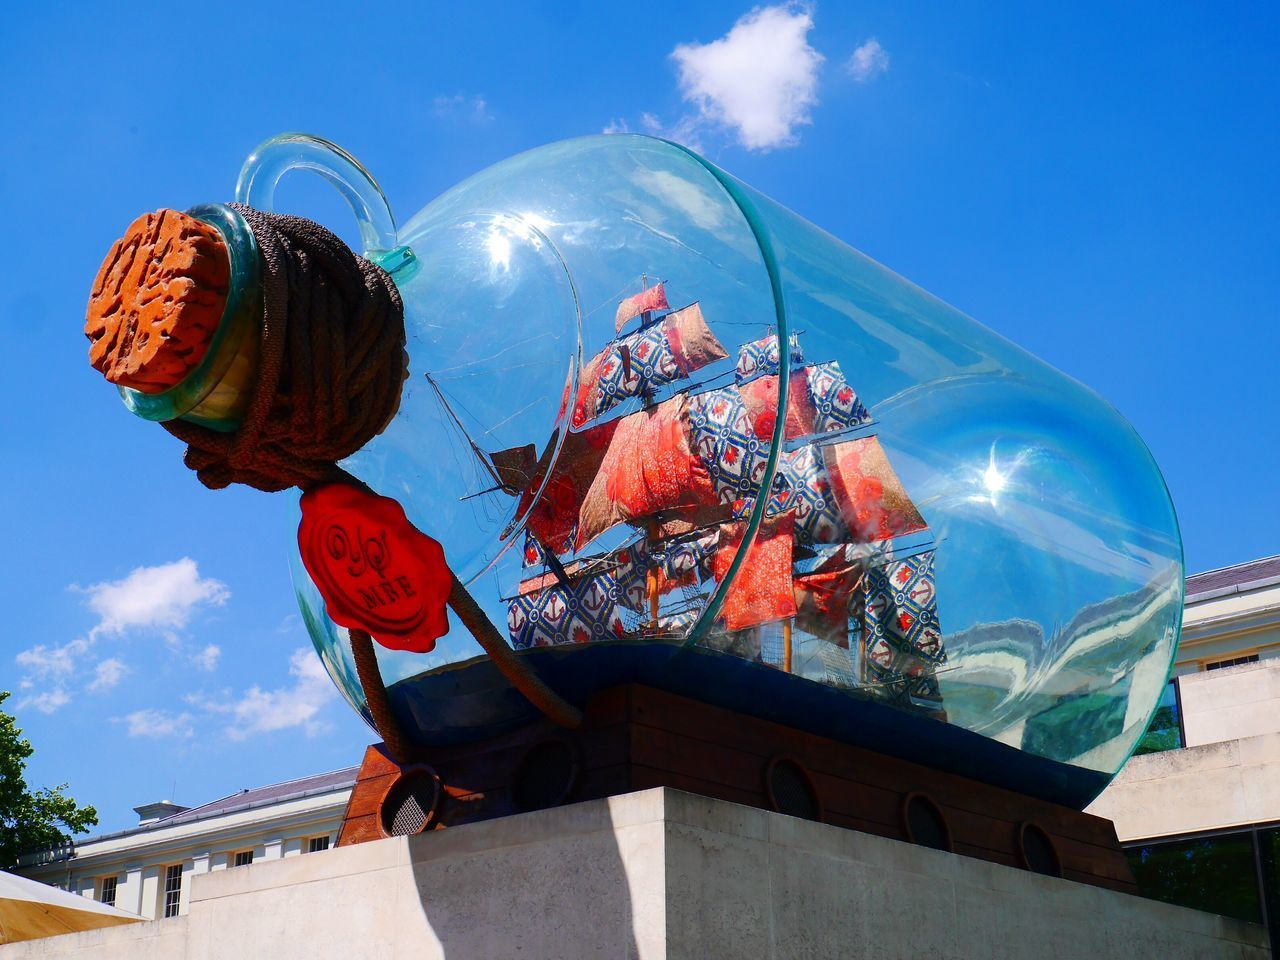 A message in a bottle Sky Cloud - Sky Low Angle View Outdoors Architecture Blue No People Day Built Structure Fish-eye Lens City Message In A Bottle Ship In A Bottle Art Is Everywhere Art Fund The Great Outdoors - 2017 EyeEm Awards